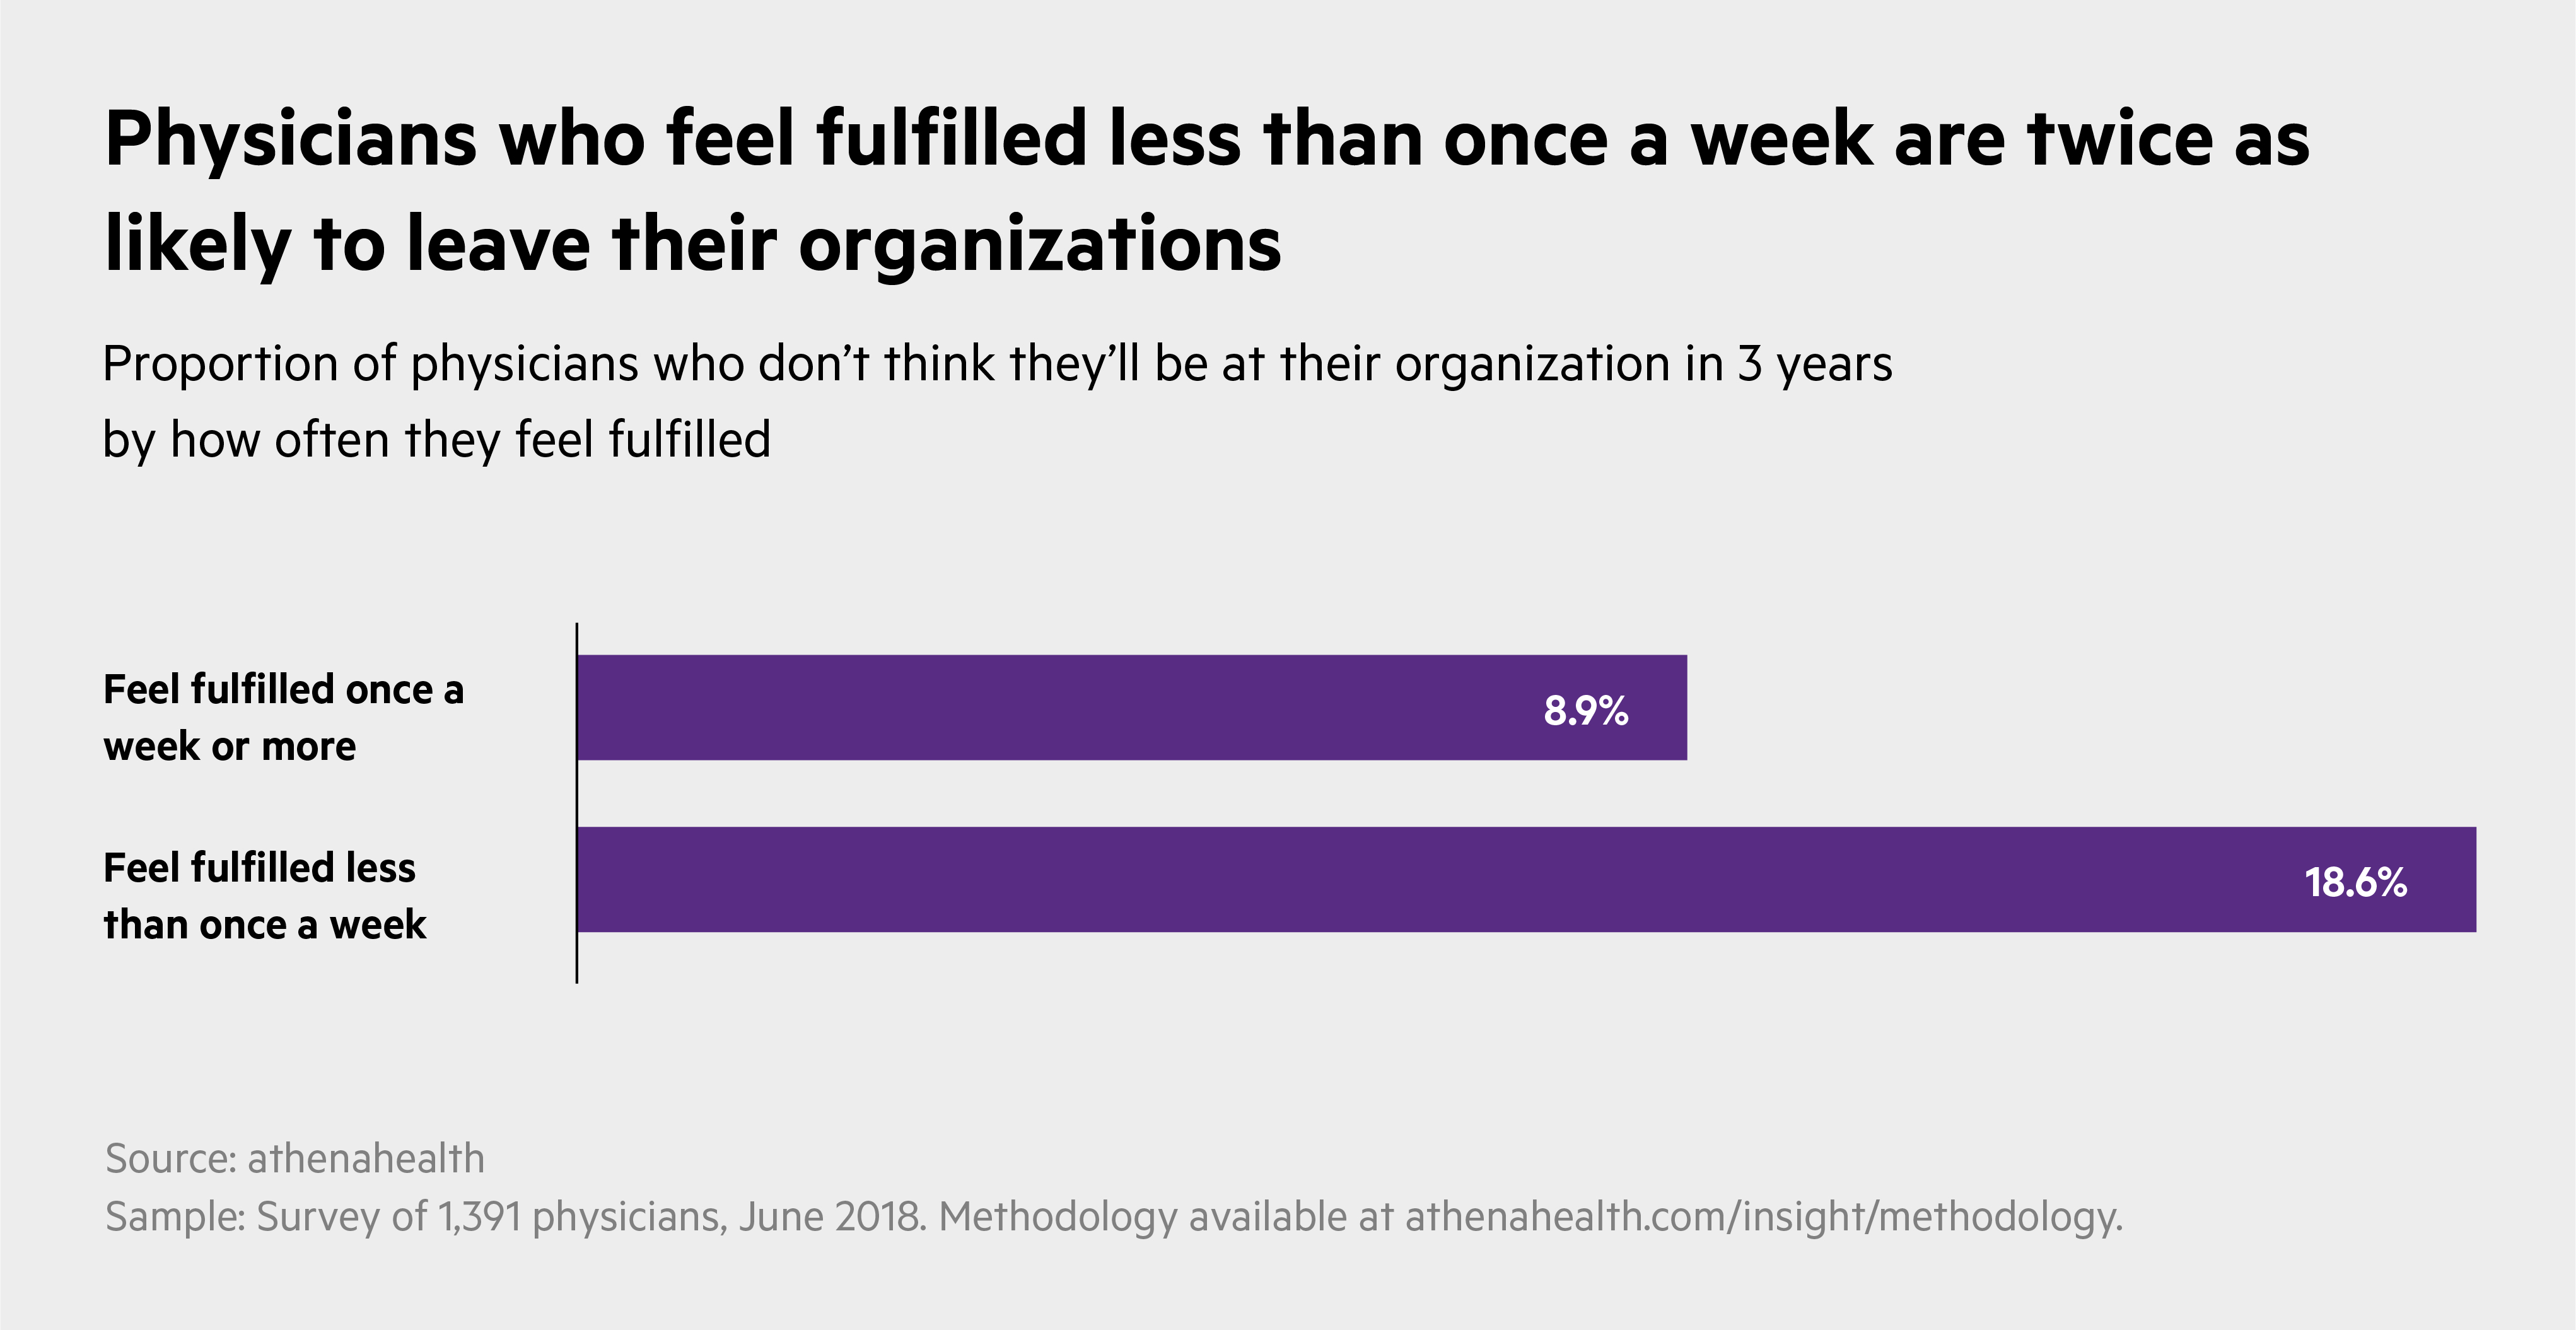 Physicians who feel fulfilled less than once a week are twice as likely to leave their organizations.